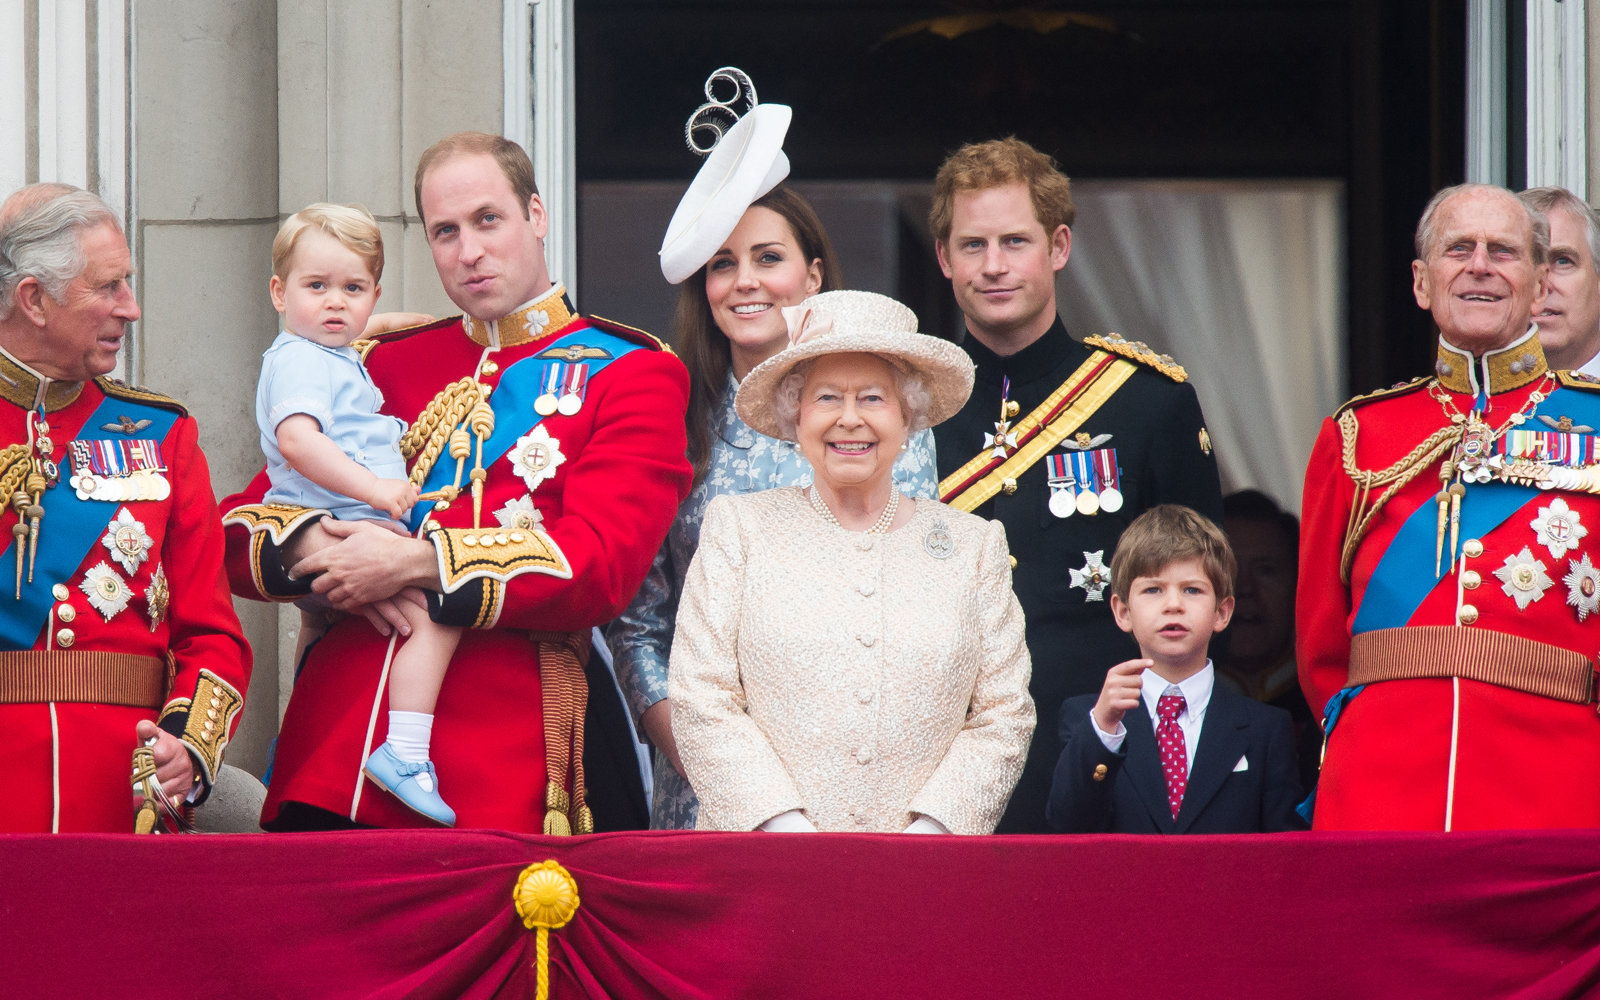 What is the British Royal Family's Last Name